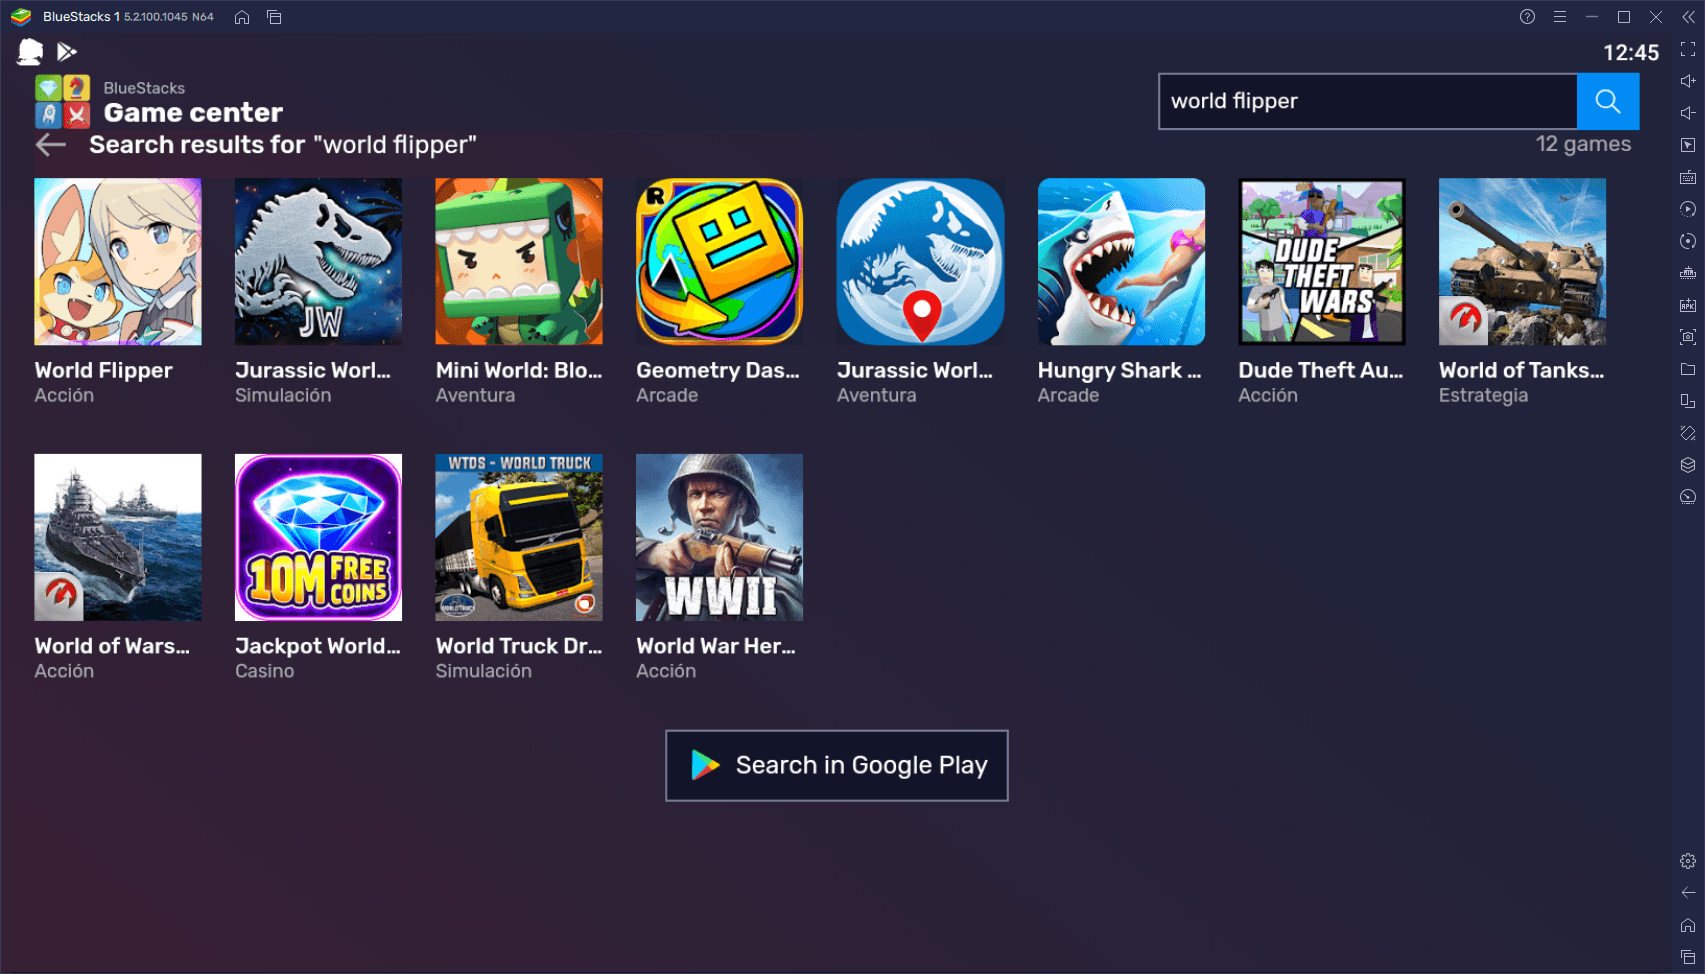 How to Install and Play World Flipper on PC with BlueStacks